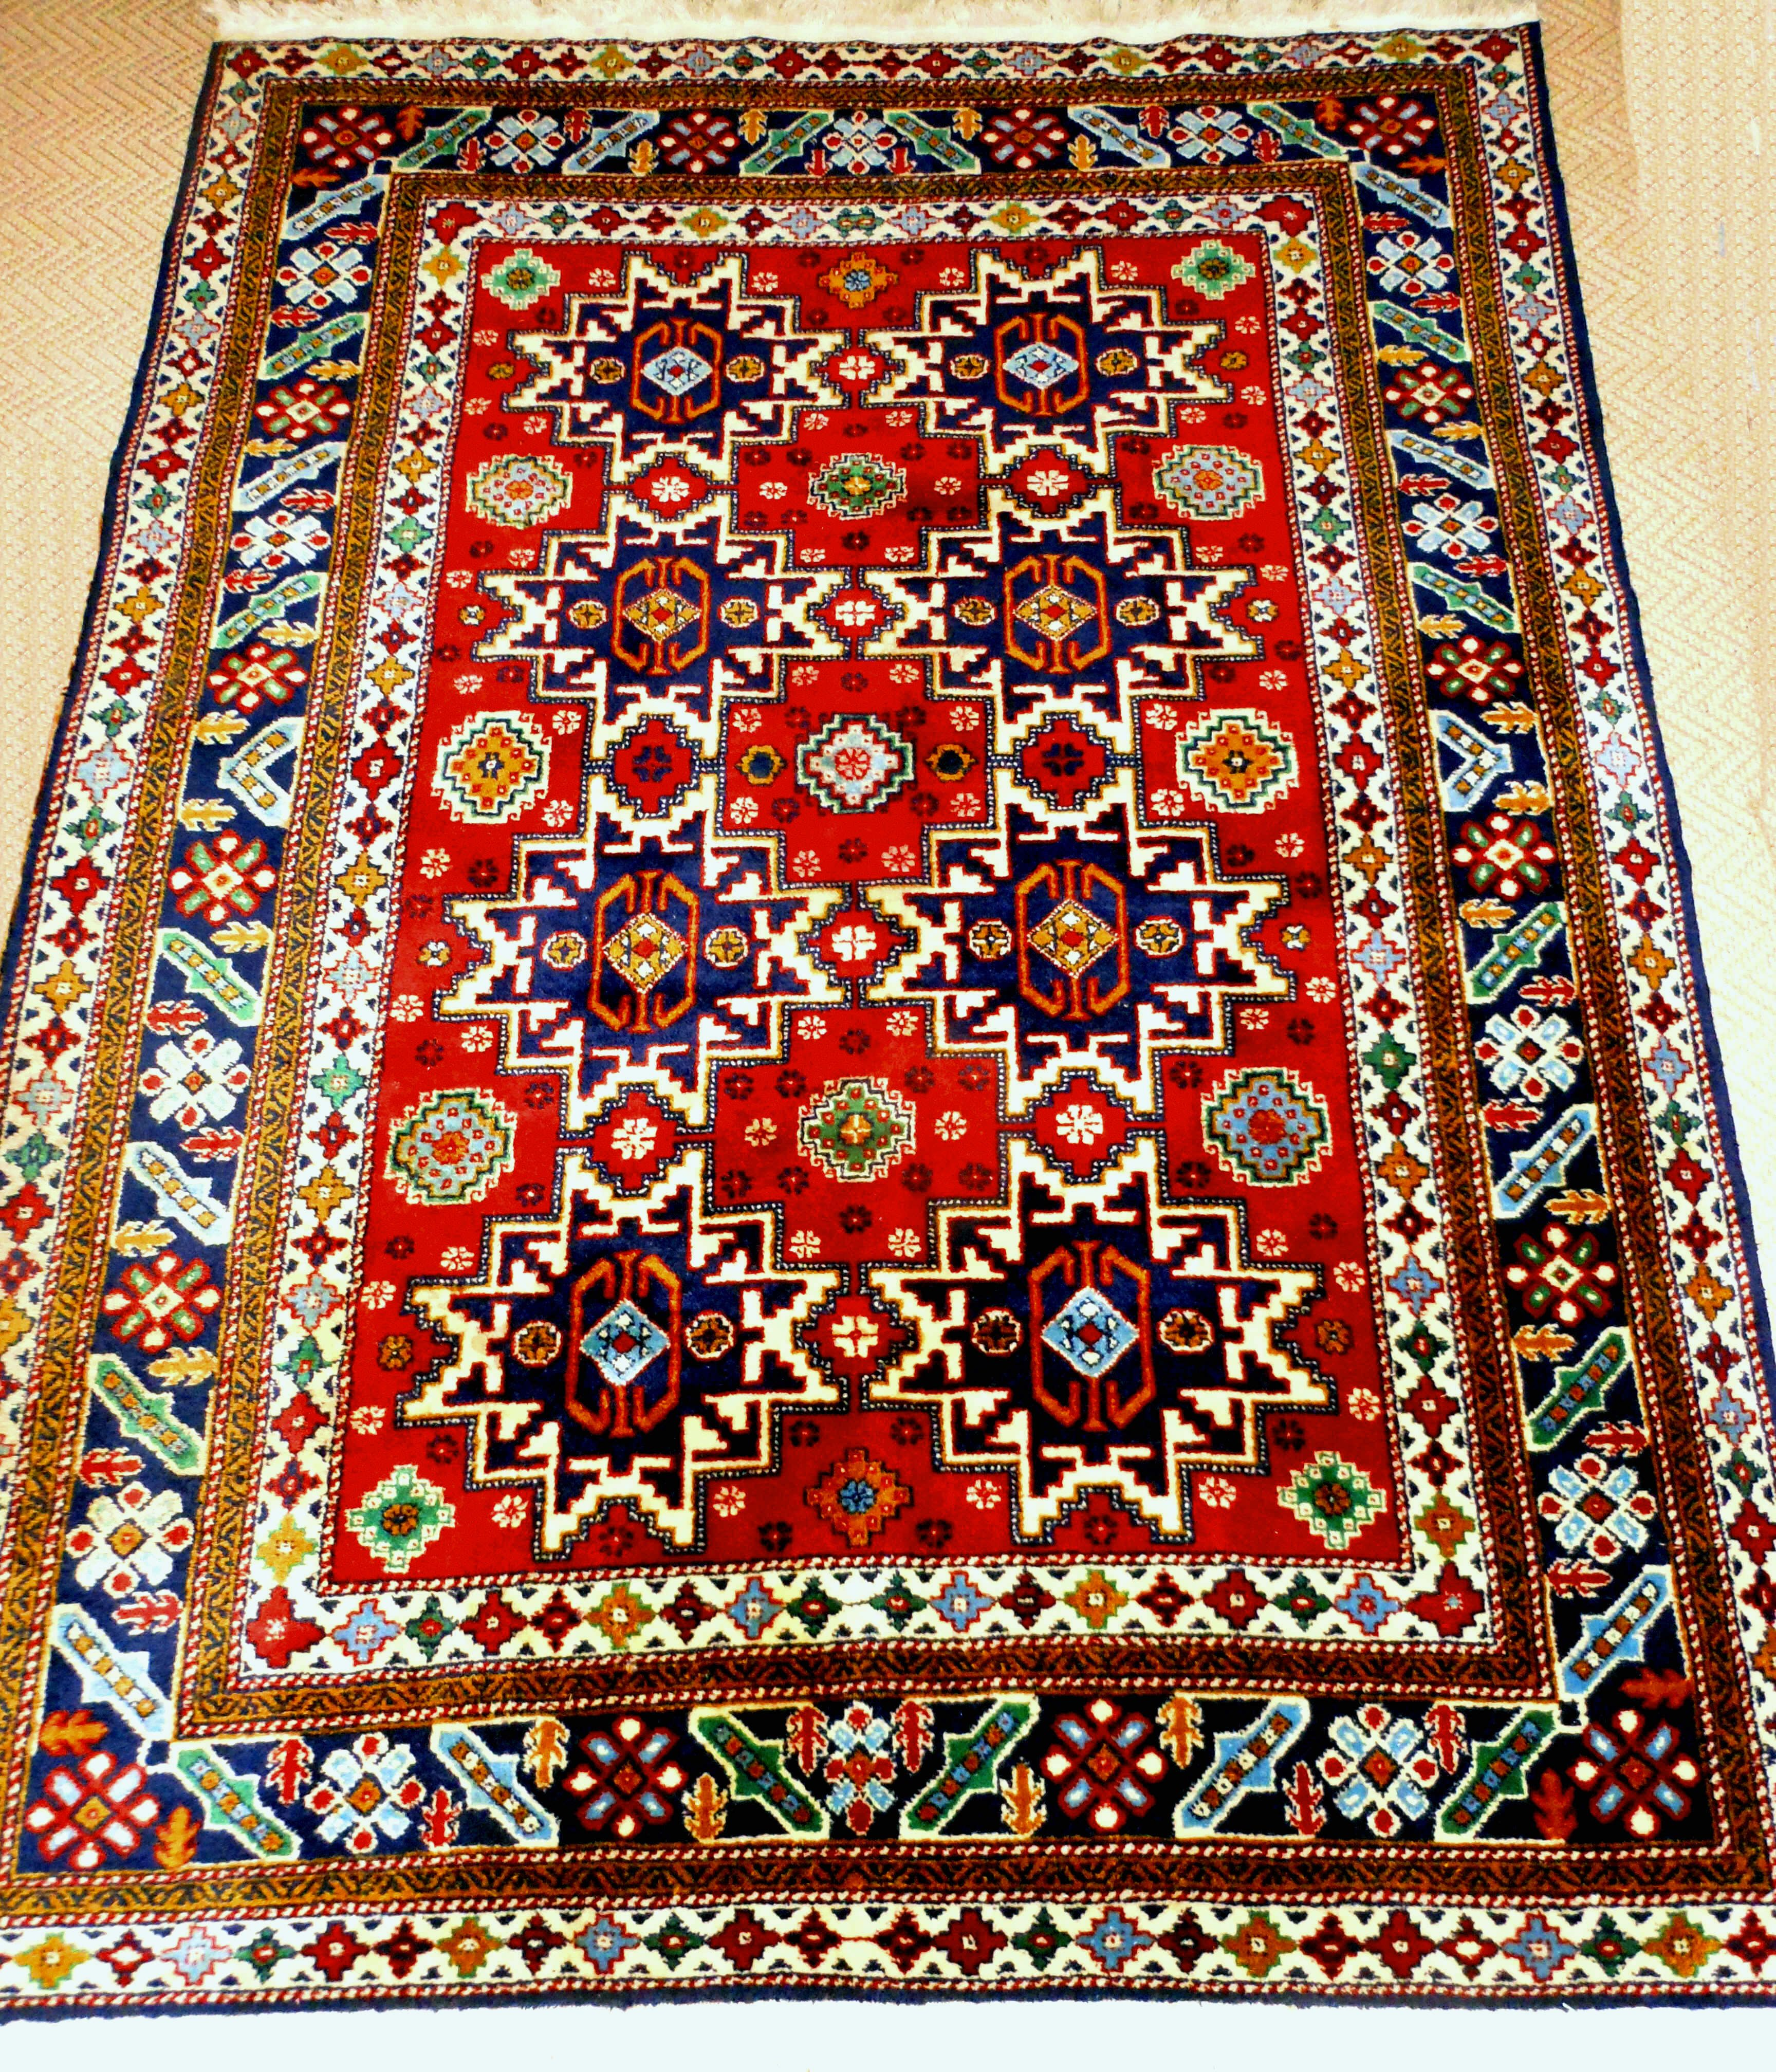 This Is A Stunning Large Lesghi Star Shirvan Vintage House Bohemian Rug Vintage